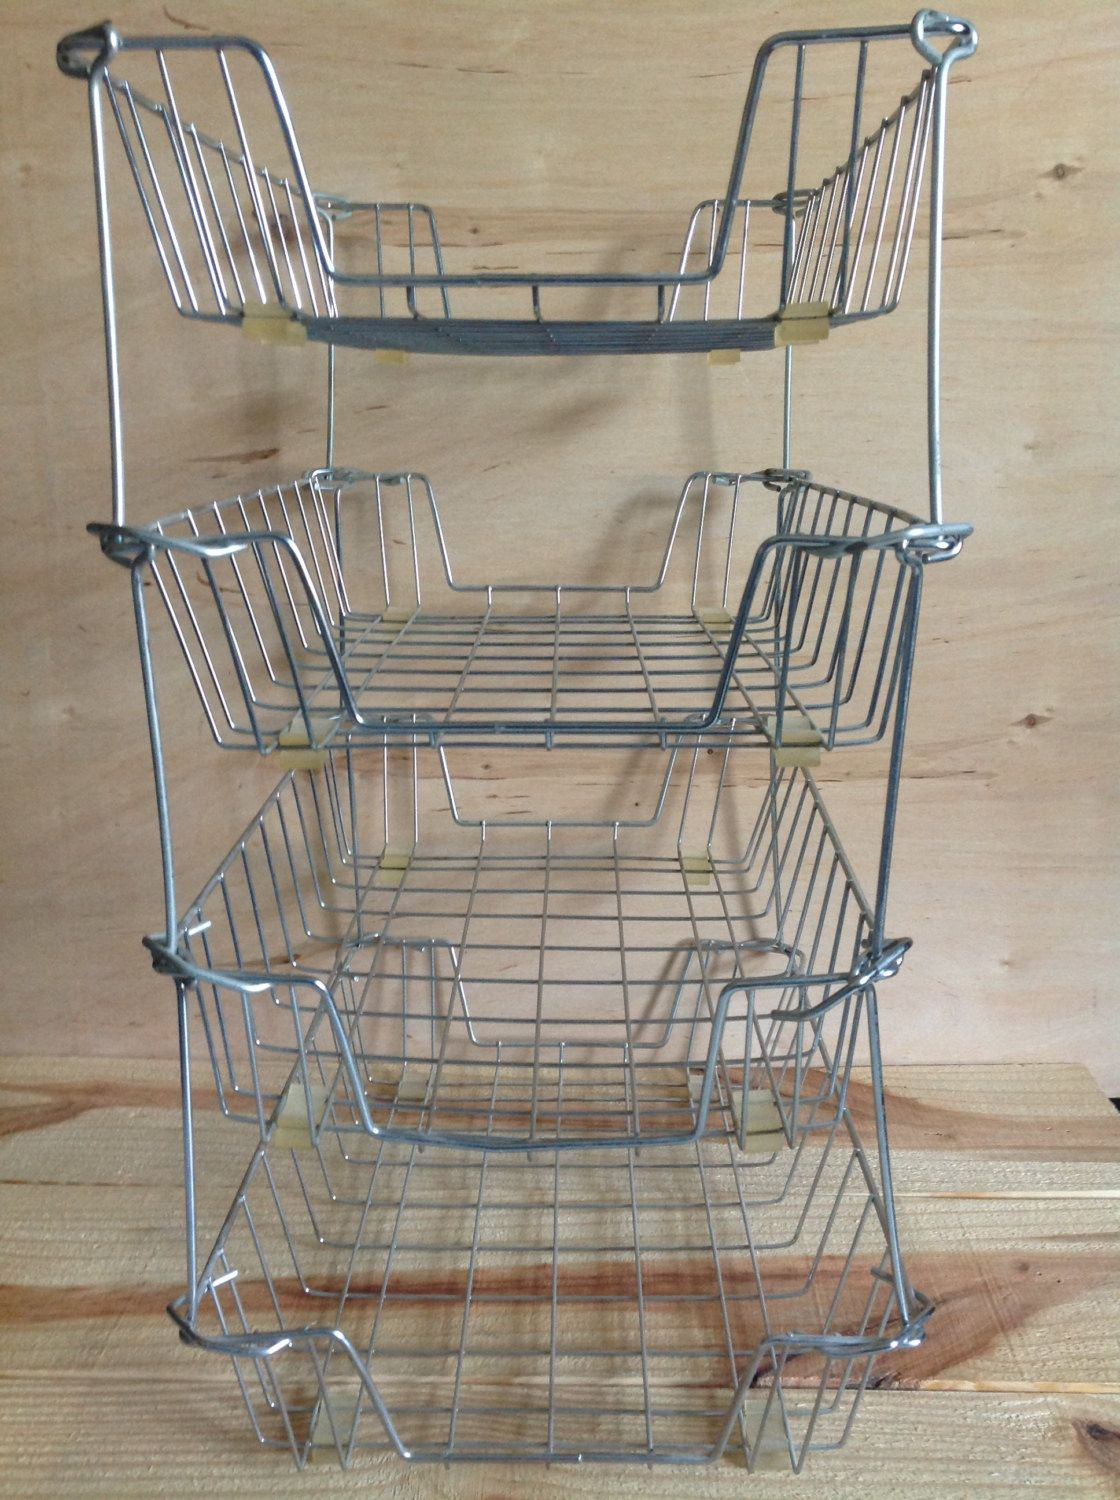 Desk Organizer 4 Tier Industrial Chic Metal Letter Shelving Office Tray  Stackable Bin. $40.00, Via Etsy.